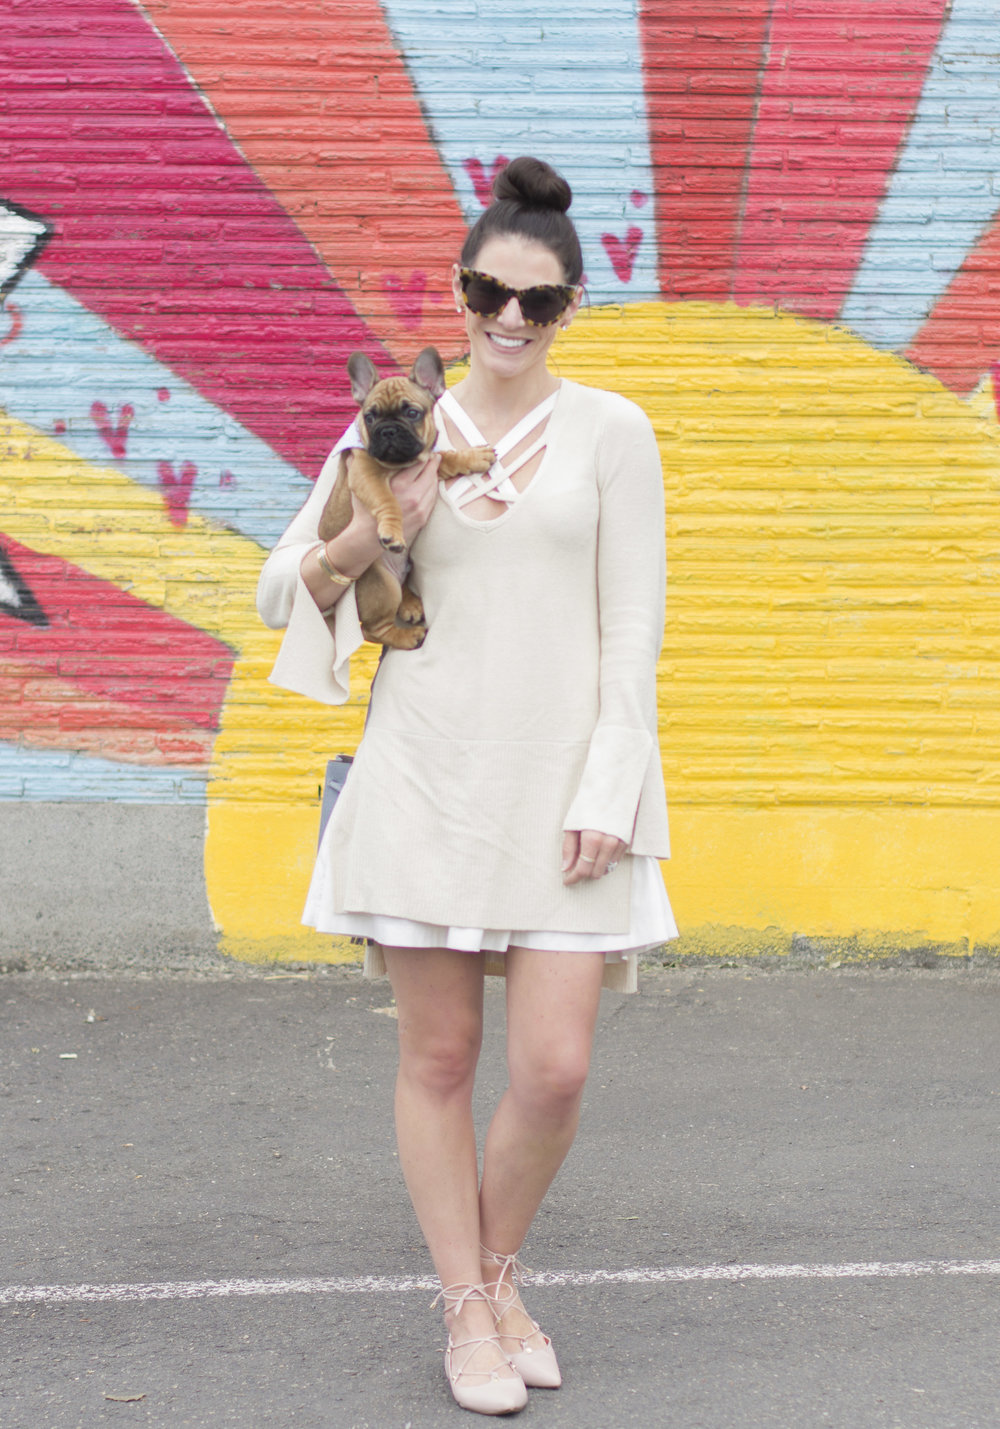 Summer to Fall transition outfit, Summer dress with fall sweater, Free People crisscross sweater, Halogen Owen lace-up ghillie flats, Karen Walker cat eye sunglasses, French Bulldog puppy, Top knot.